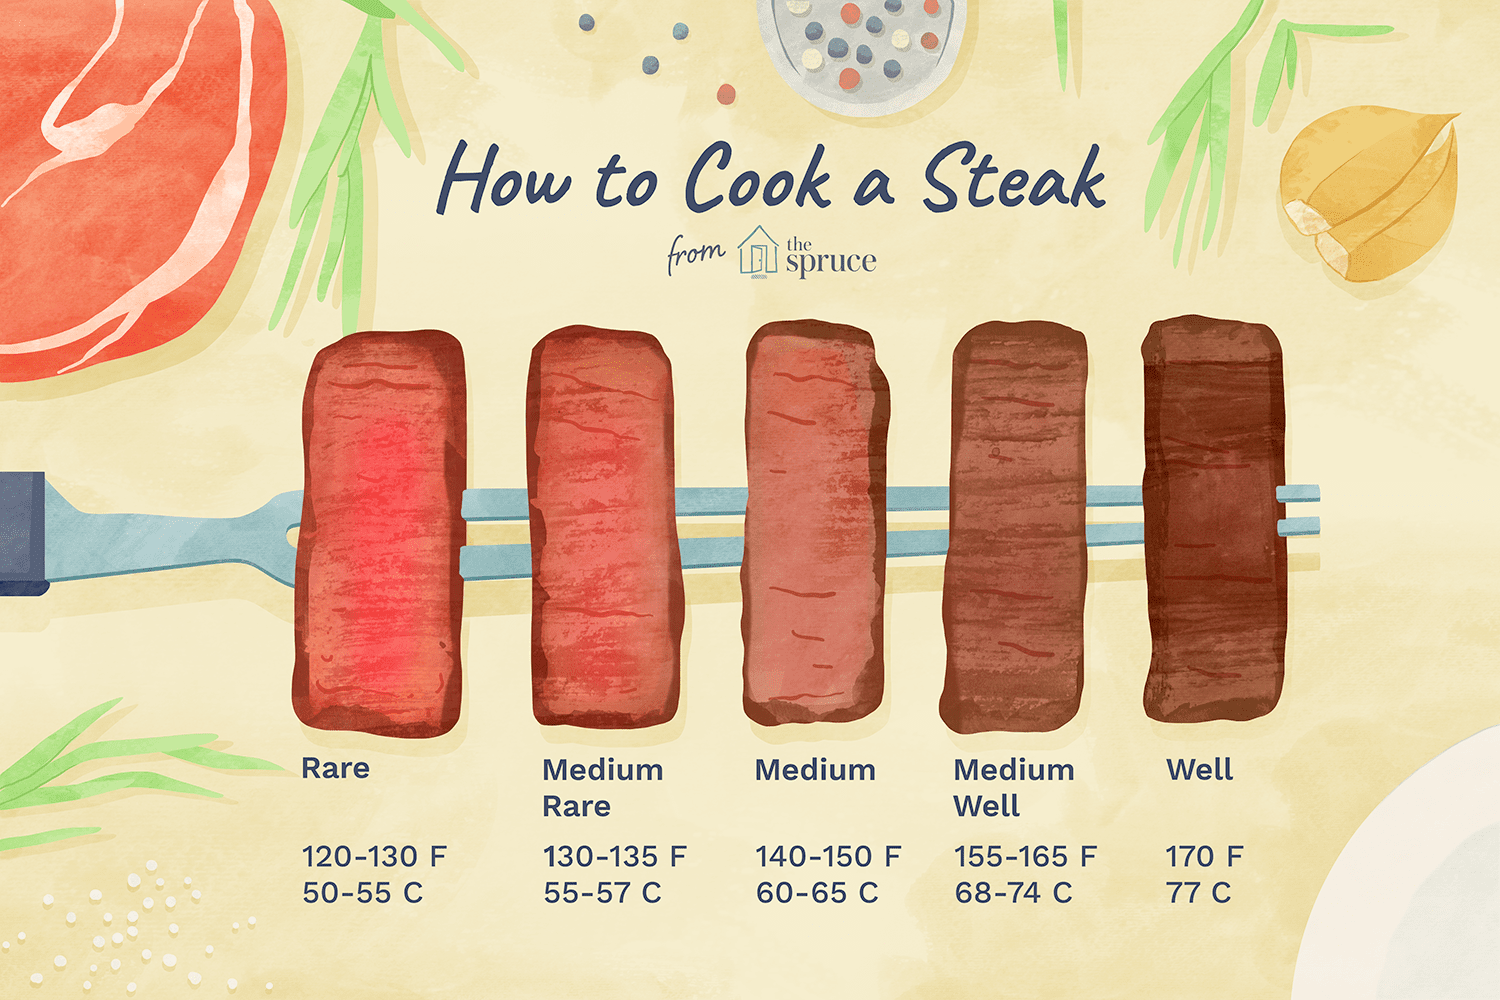 how to cook a steak illustration